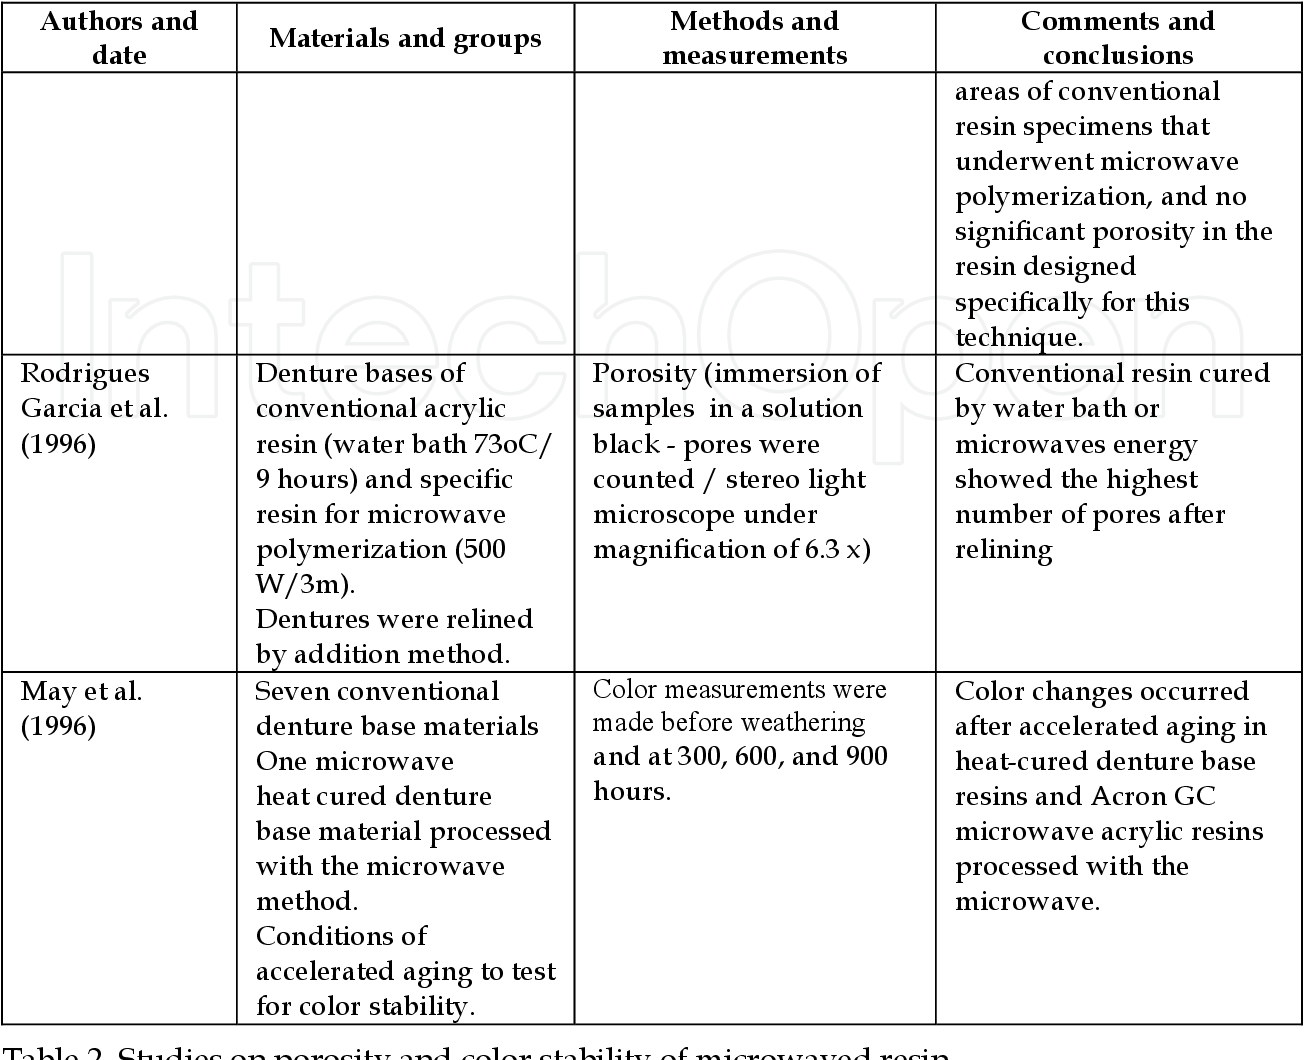 Table 2 from The Use of Microwave Energy in Dental